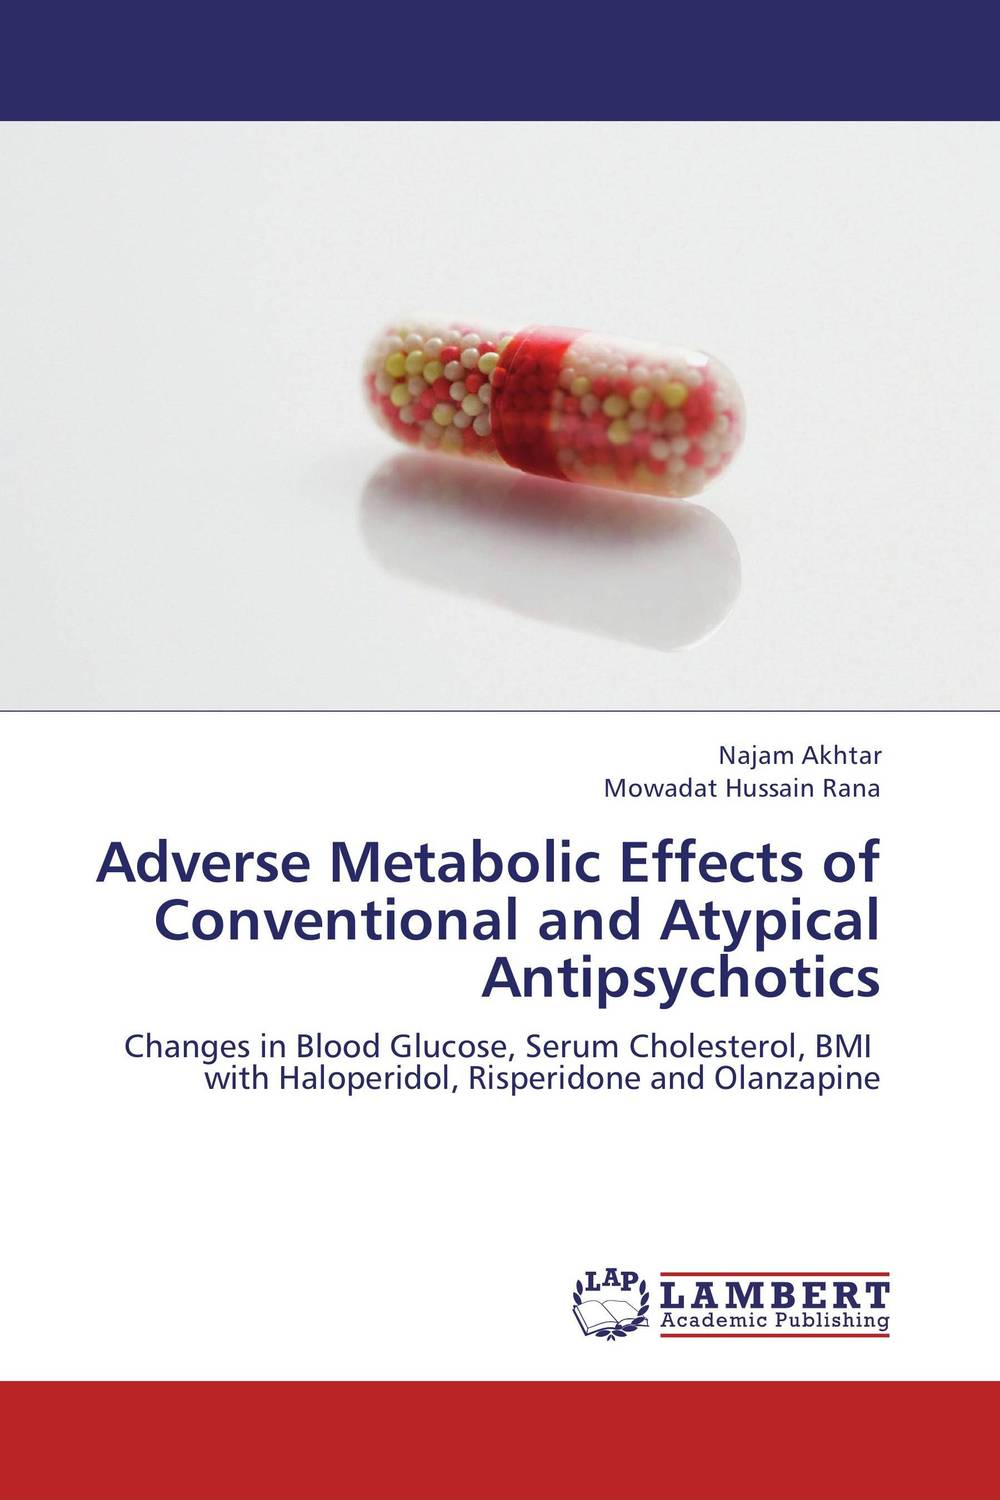 Adverse Metabolic Effects of Conventional and Atypical Antipsychotics atypical employment practices a qualitative investigation